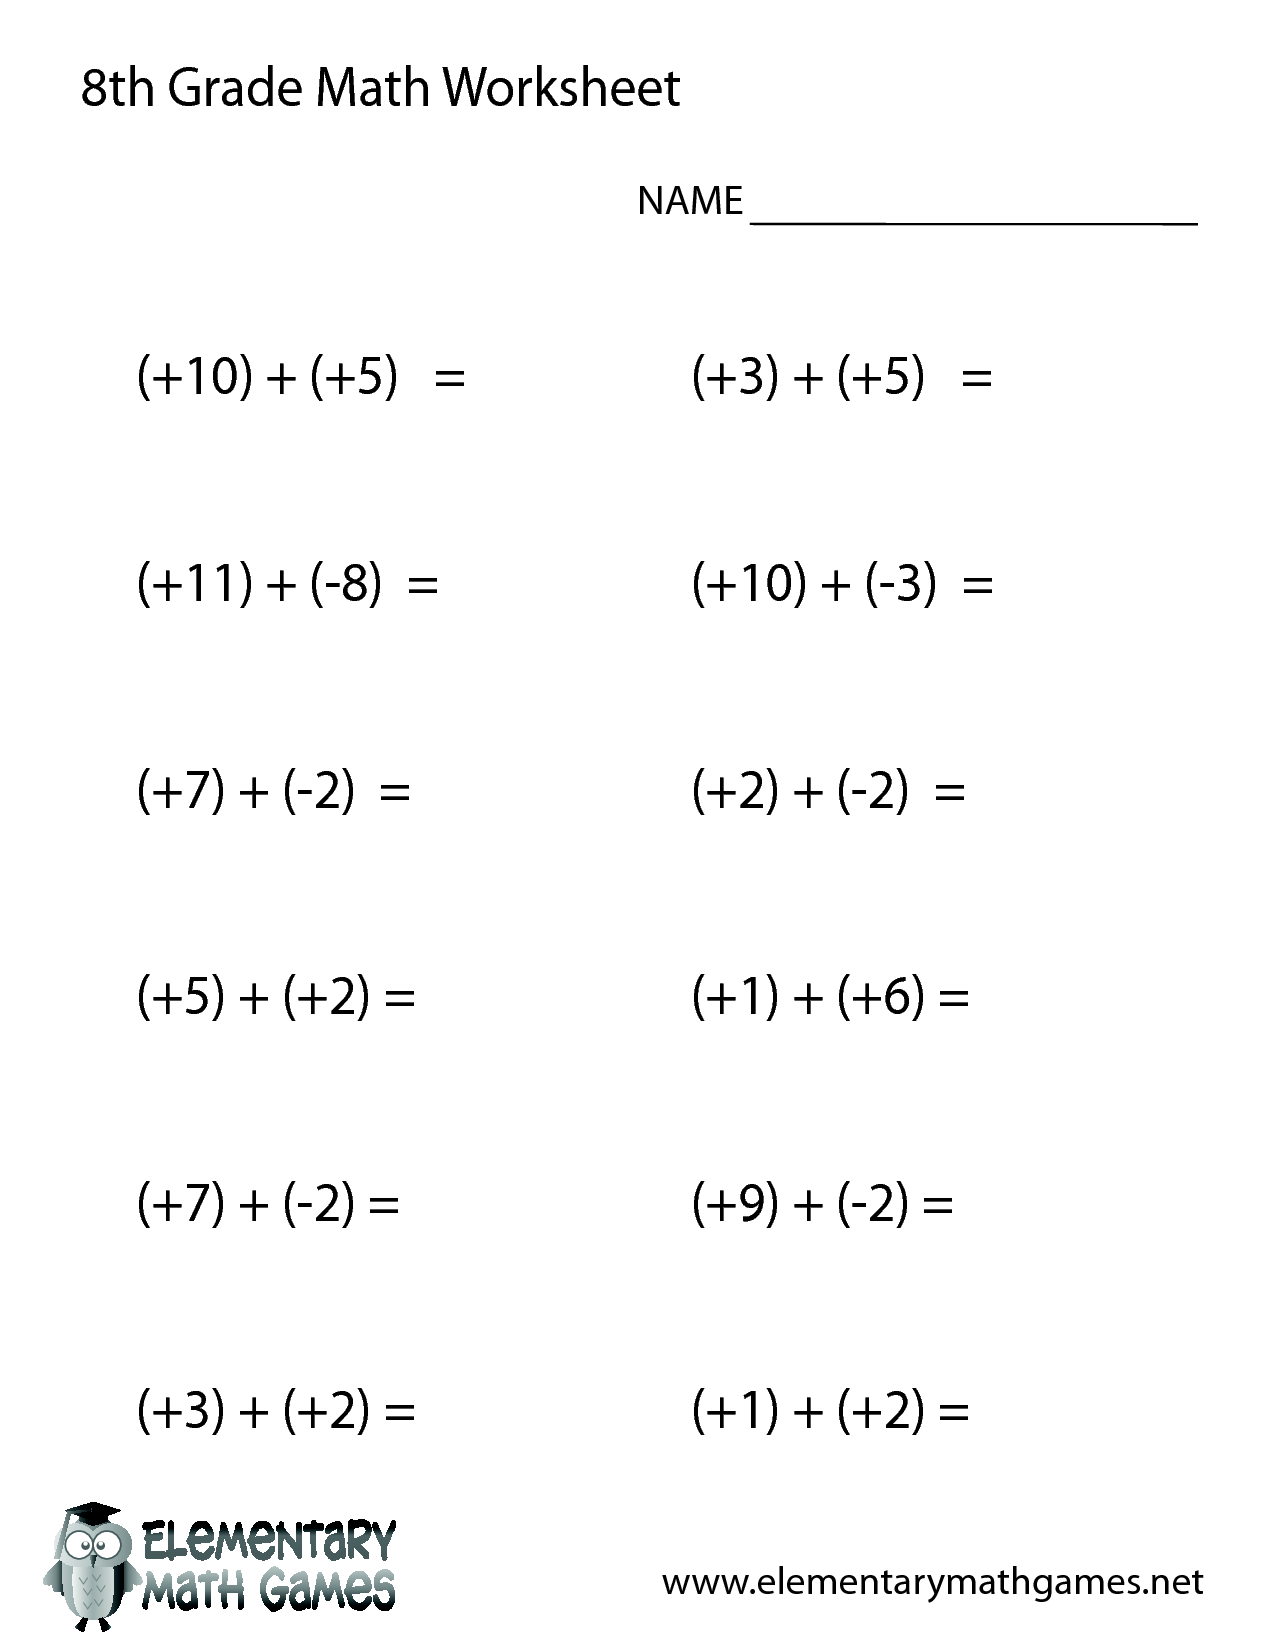 17 Best Images Of 8th Grade Pre Algebra Worksheets